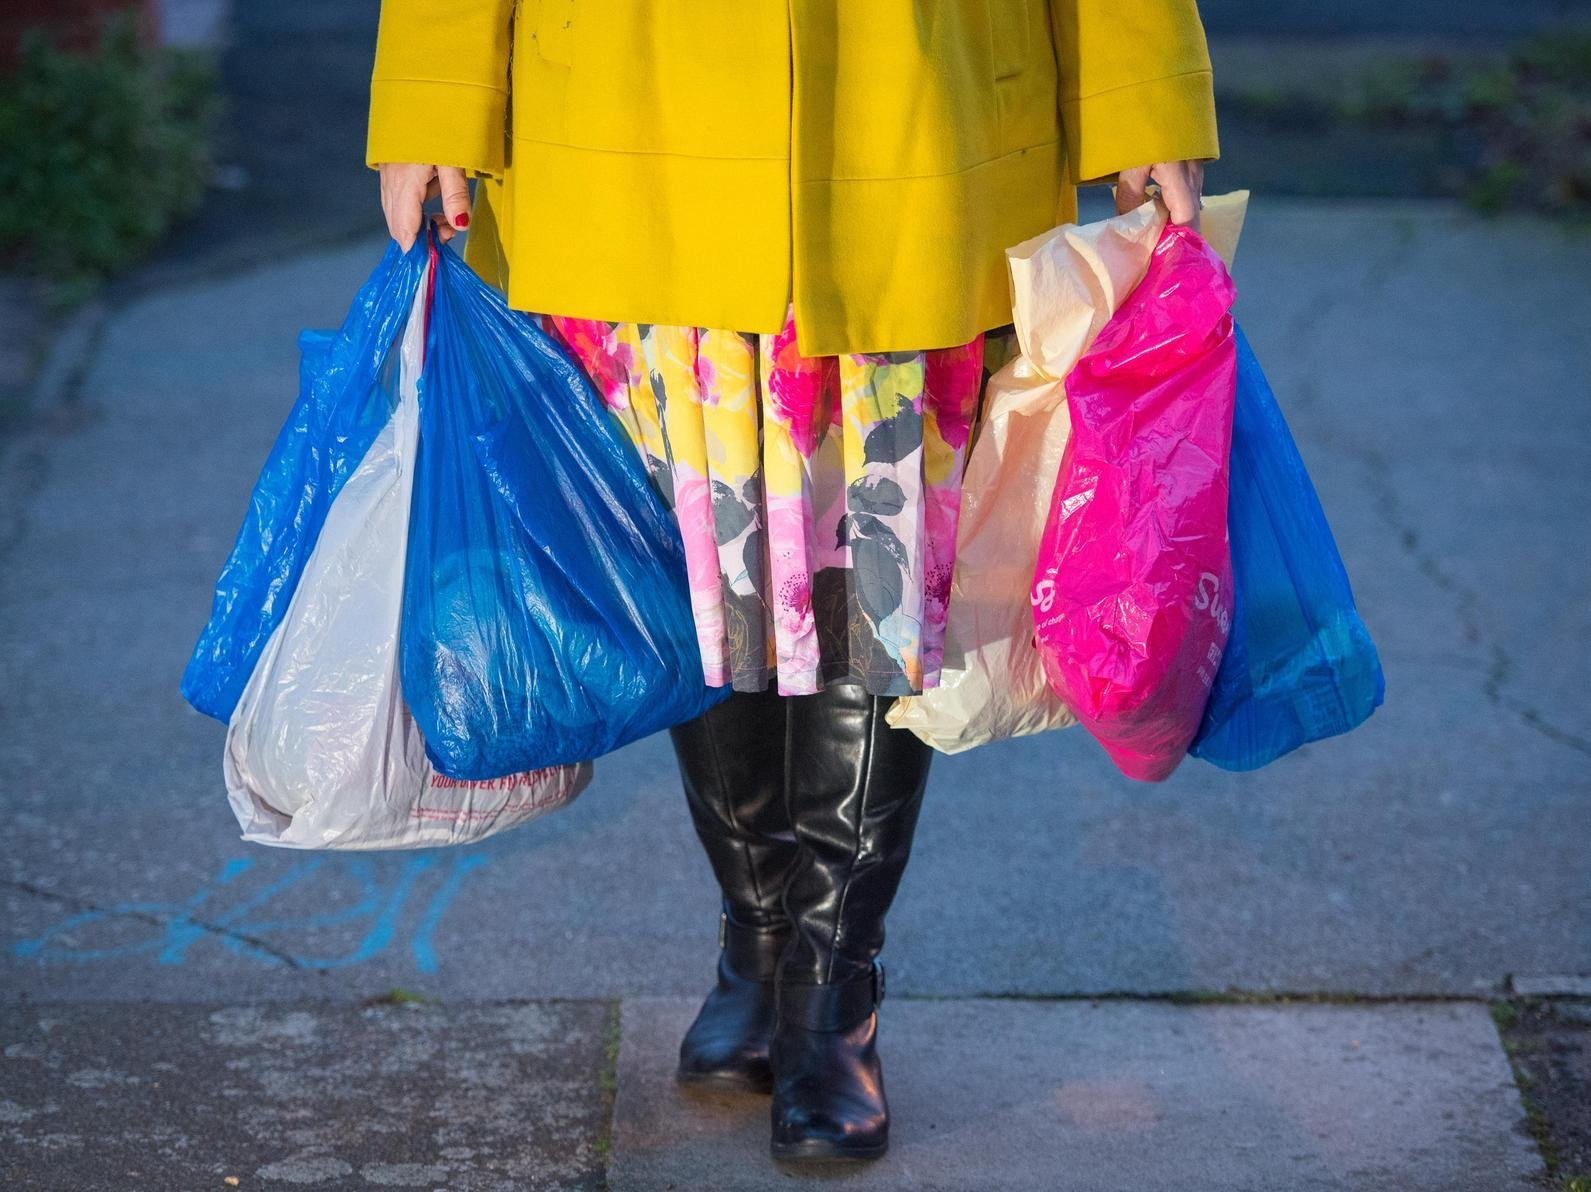 Plastic bag charge to increase from 5p to 10p from May 21, Government confirms